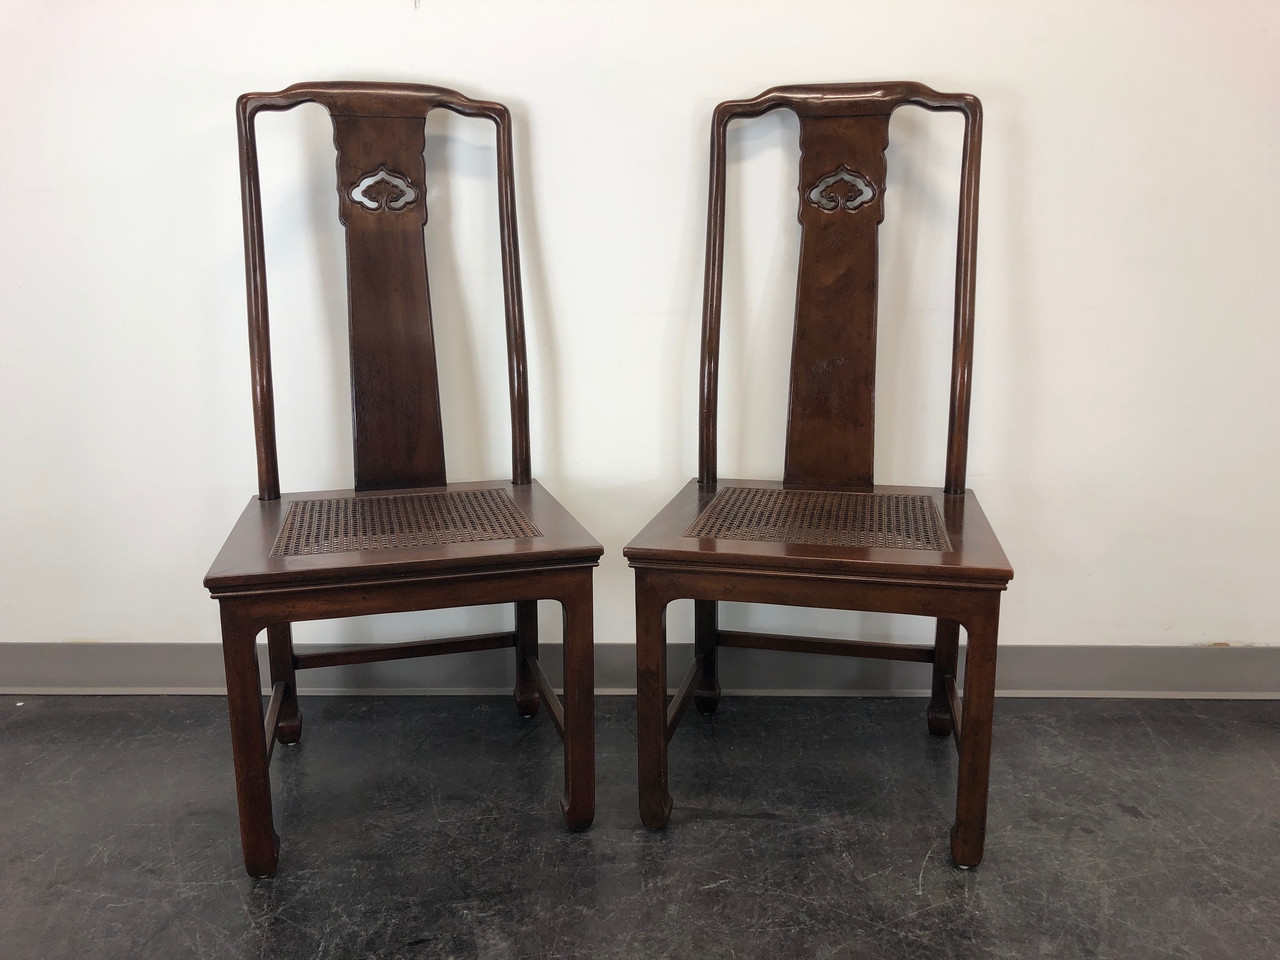 SOLD OUT - HENREDON Pan Asian Mahogany & Cane Dining Side Chairs S 28-8902  - Pair 2